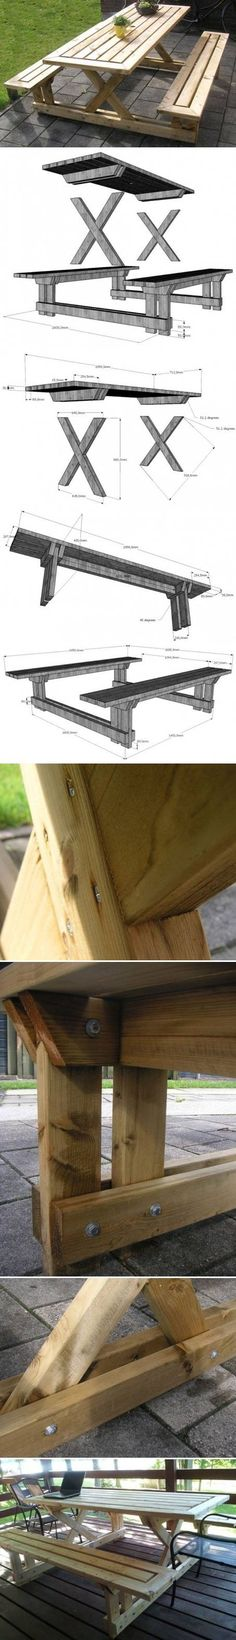 Nice design on this DIY Picnic Table